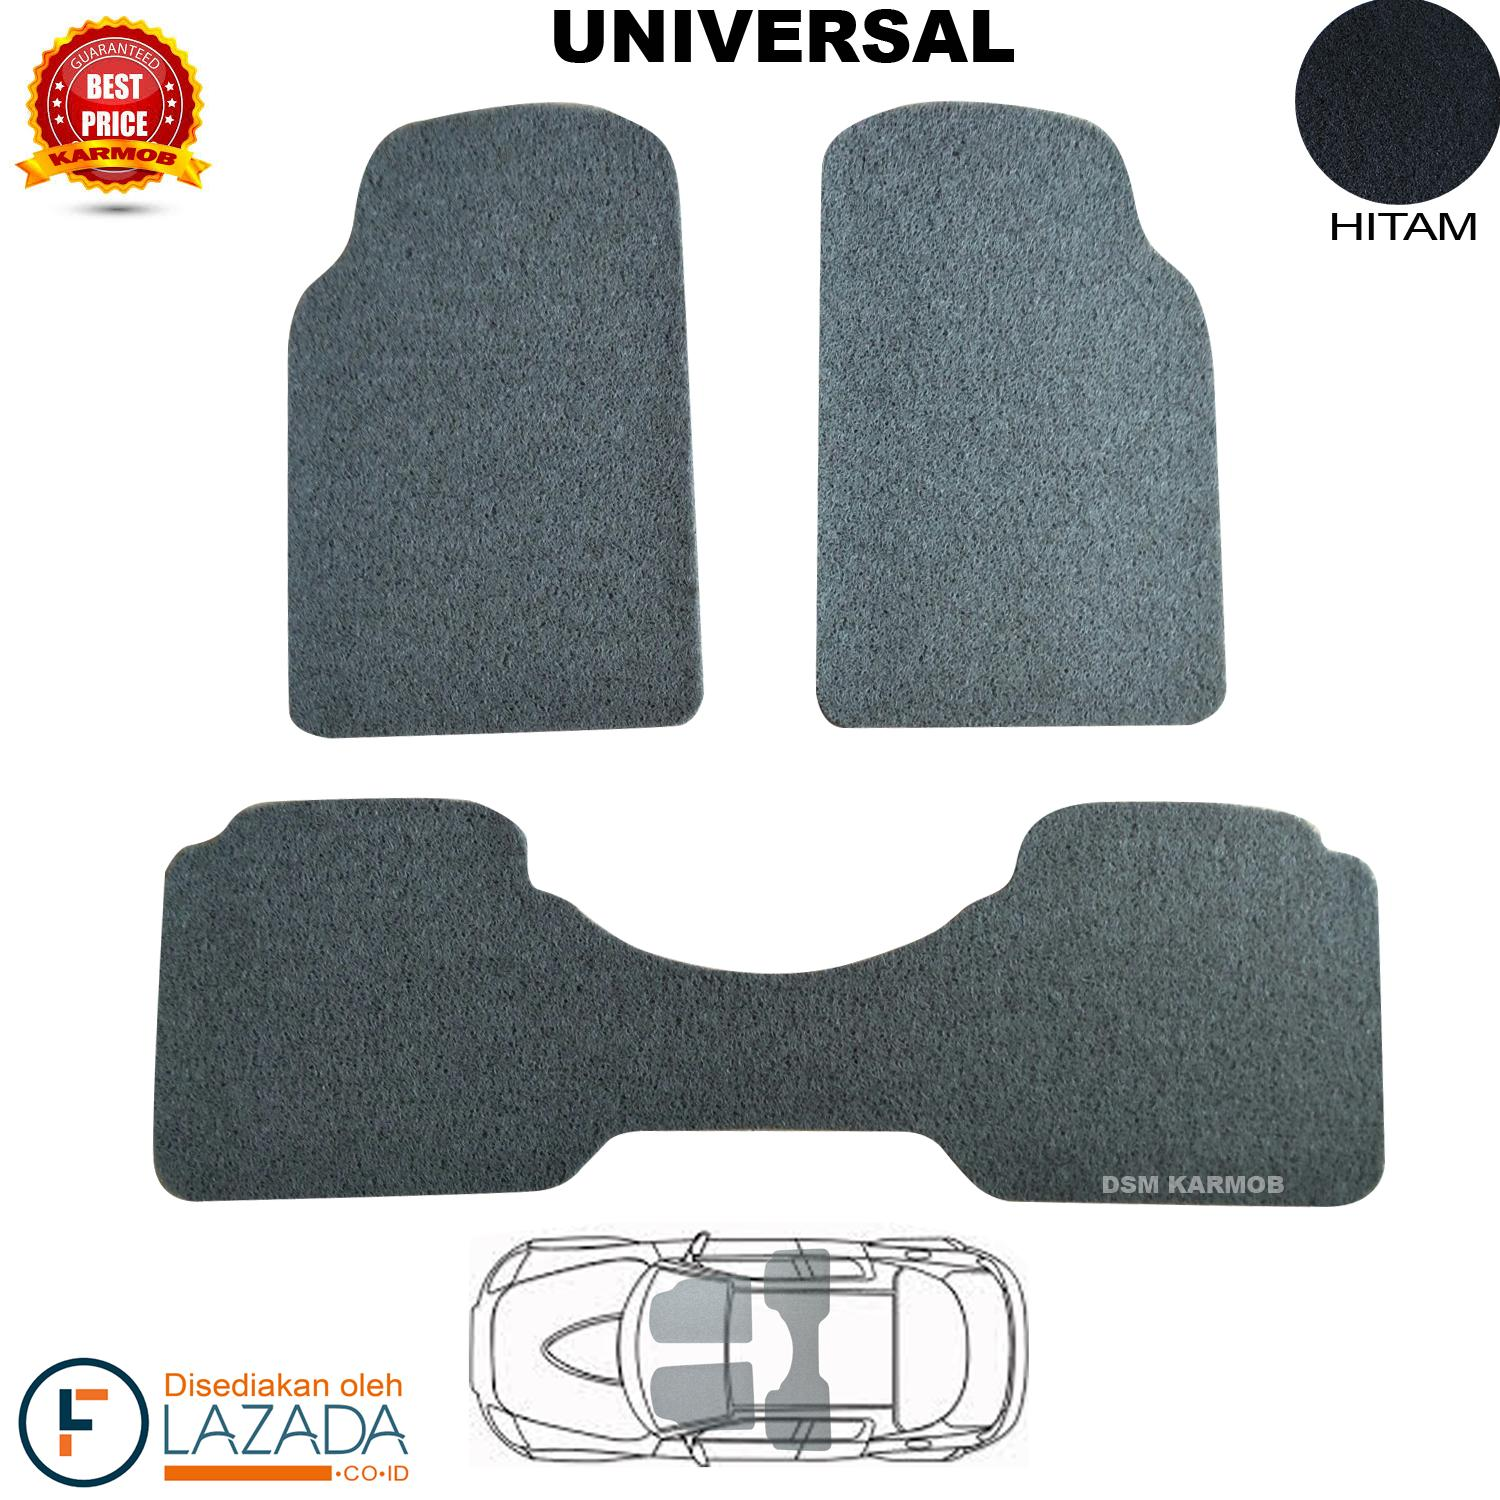 Universal Car Floor Mat Carpet Karpet Mobil 972 Hitam Update Mercedes Benz Sprinter Comfort Deluxe 12mm Full Set Karmob Mie Bihun Aksesoris